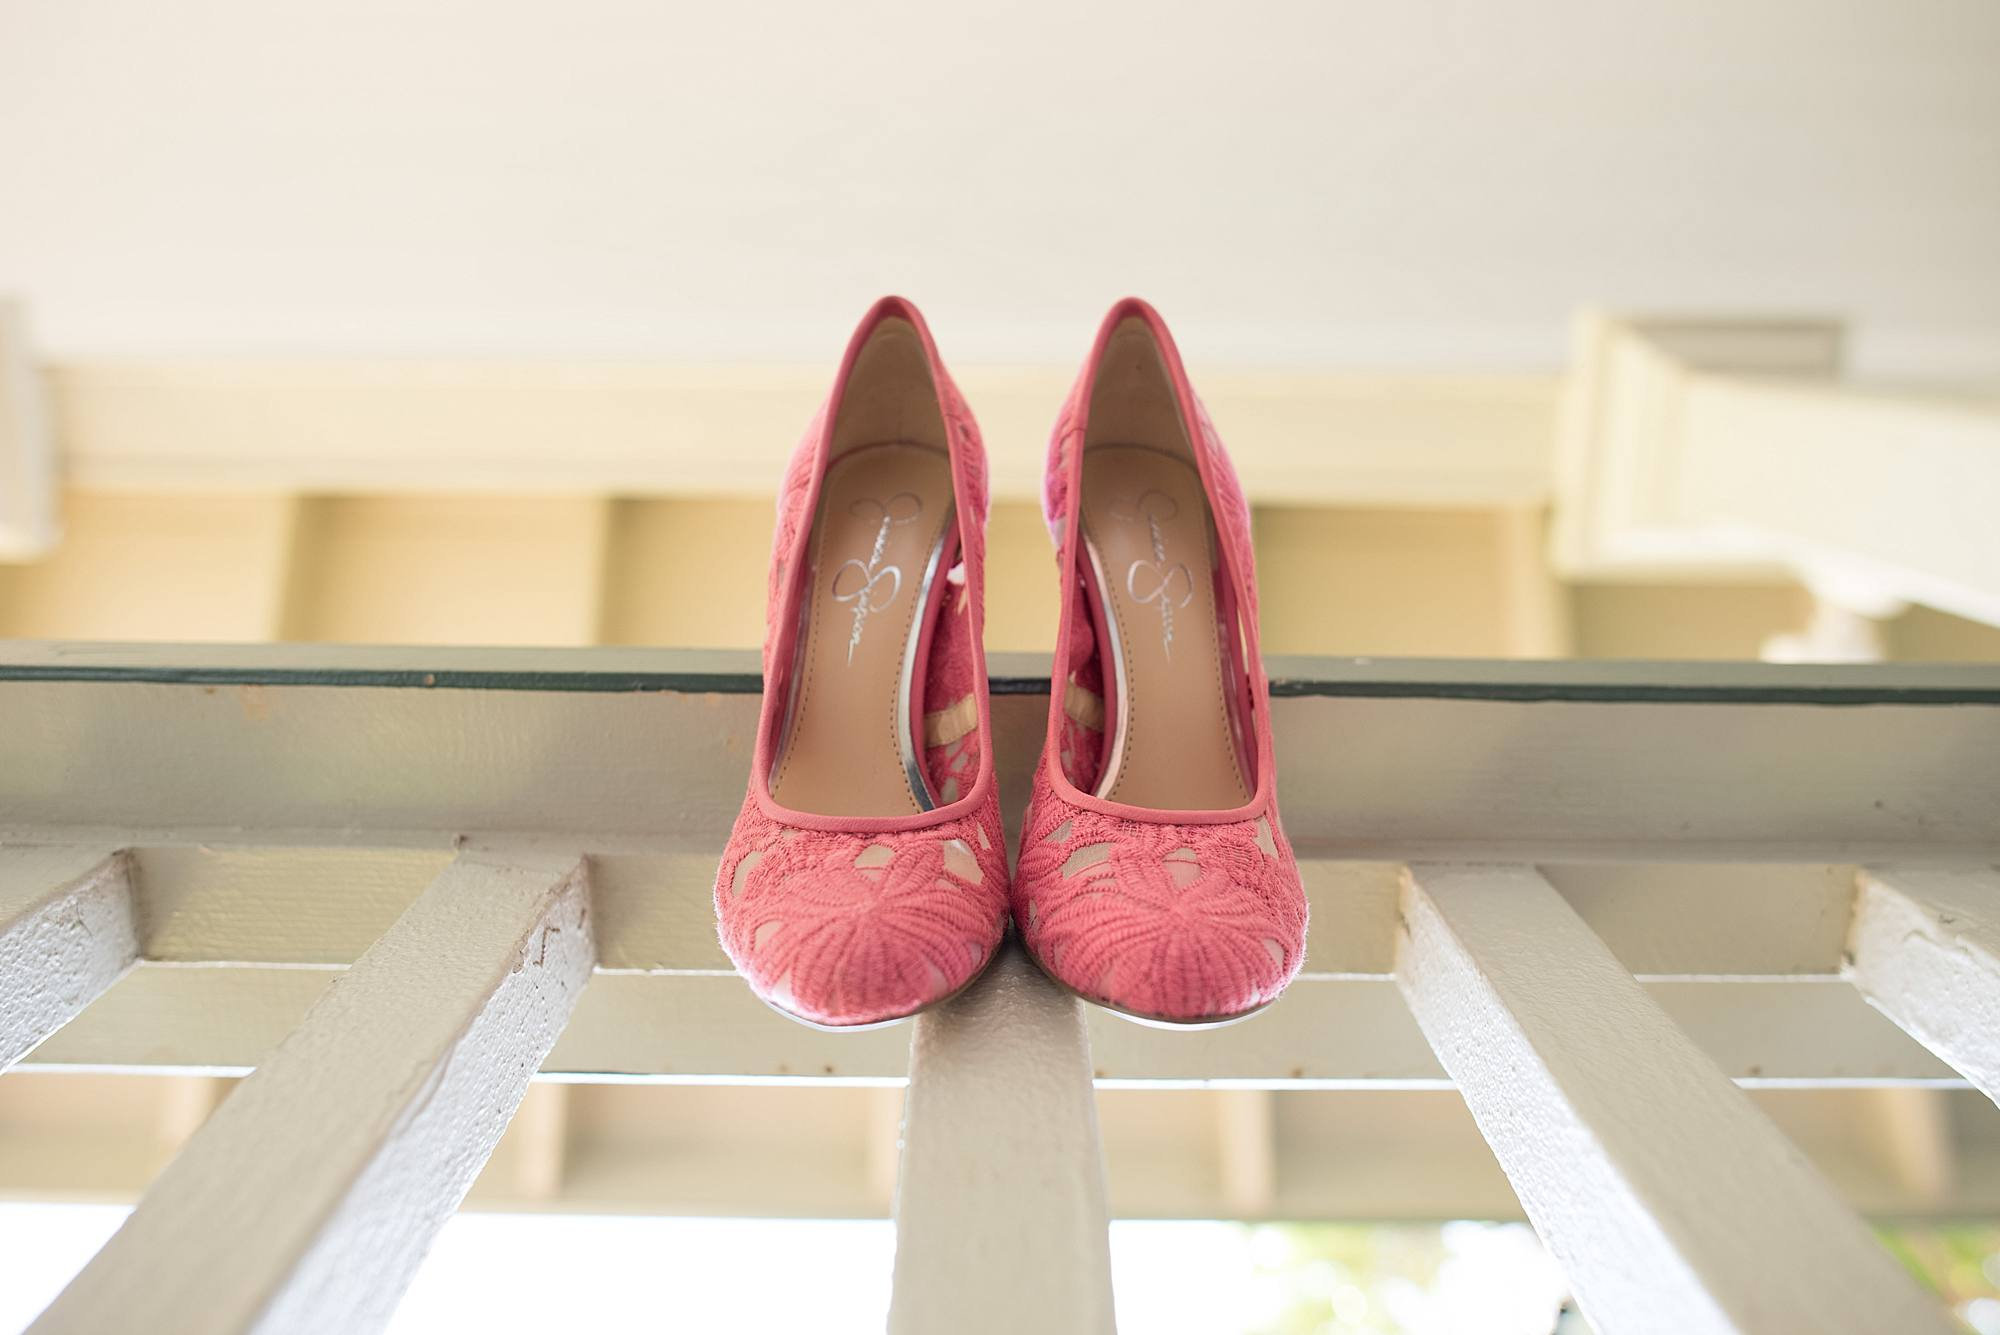 pink Jessica simpson heels as wedding shoes